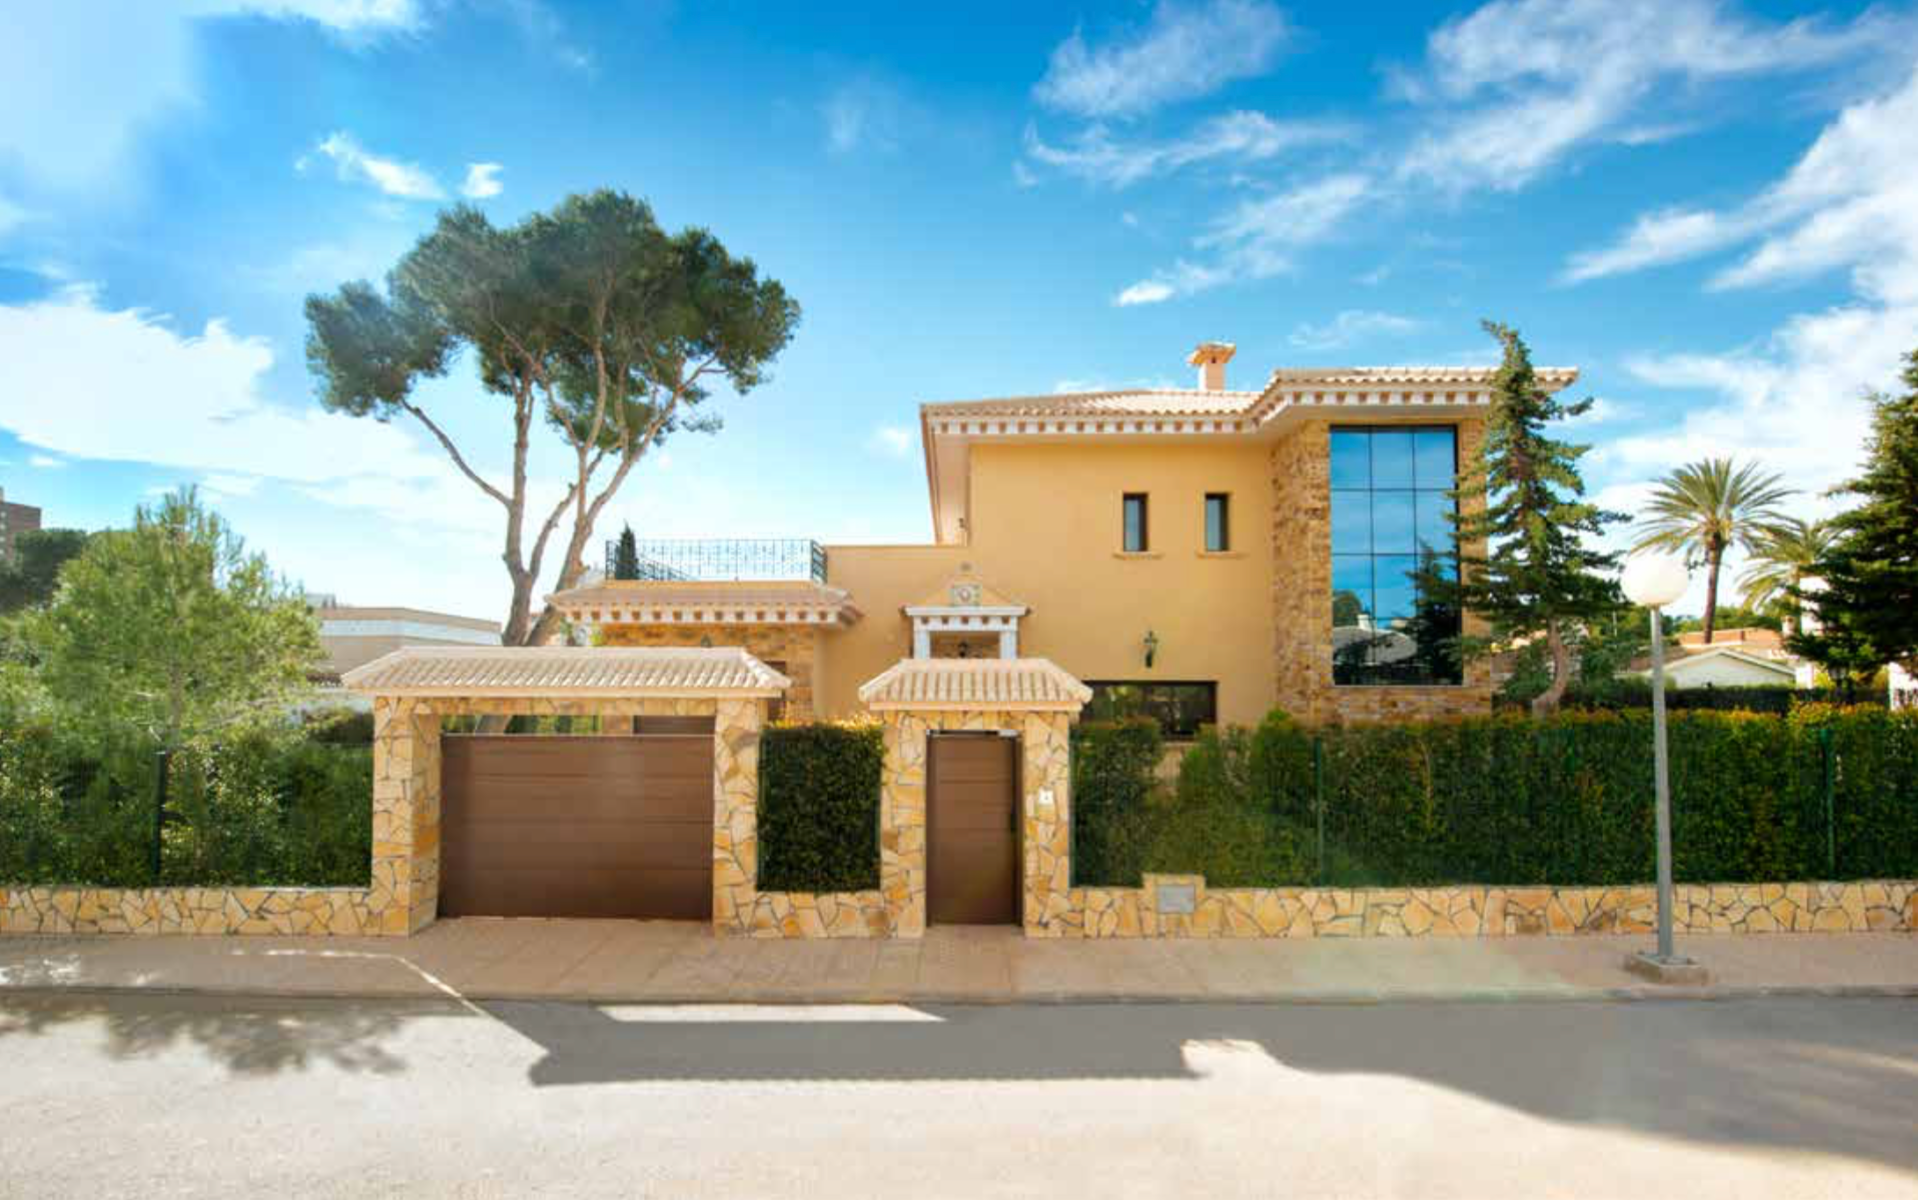 Ref:KT-65413 Villa For Sale in Campoamor